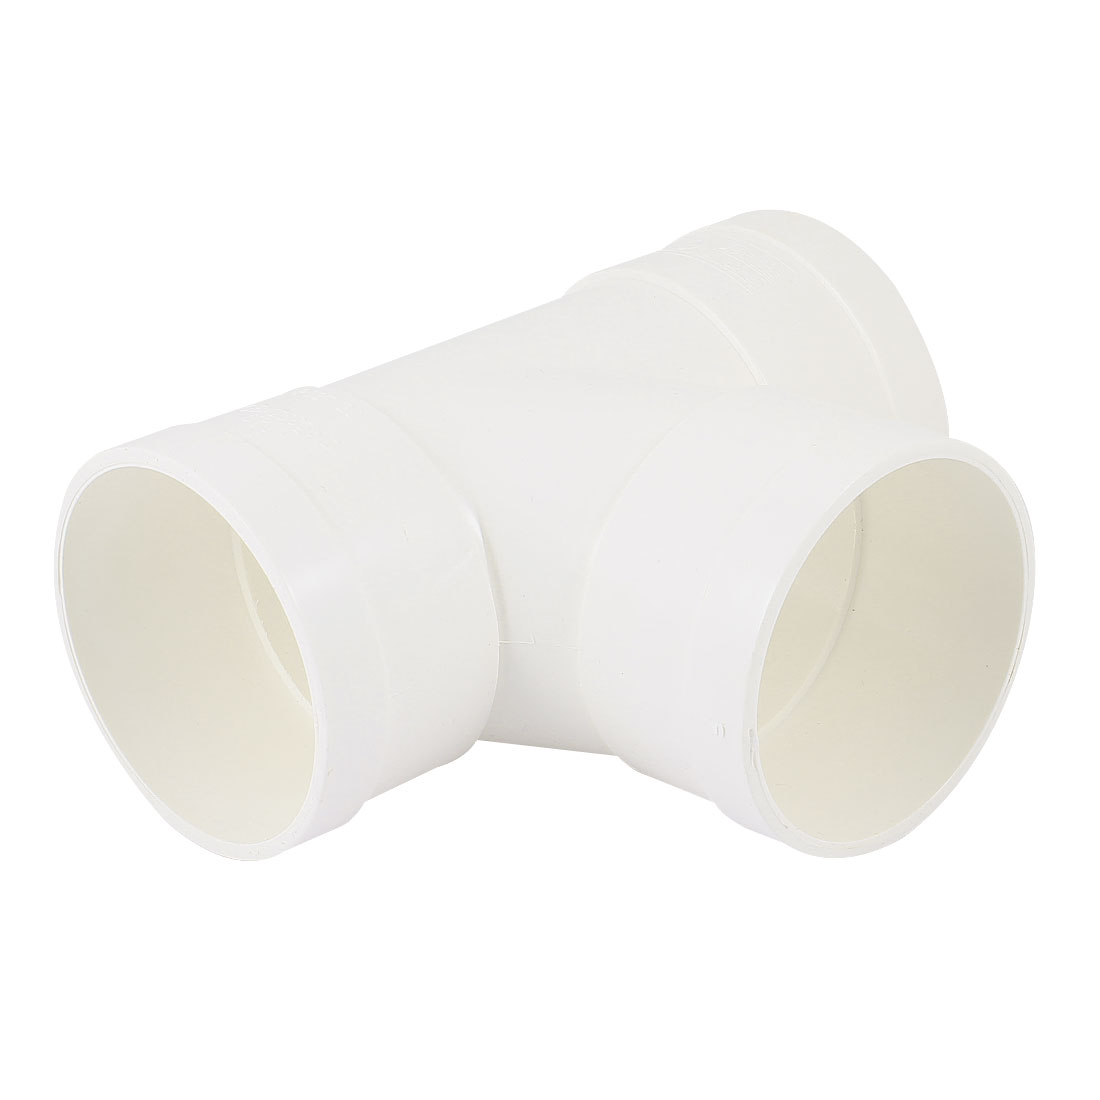 White PVC 75 x 50mm T Type 3 Way Water Pipe Tube Fitting Adapter Connector